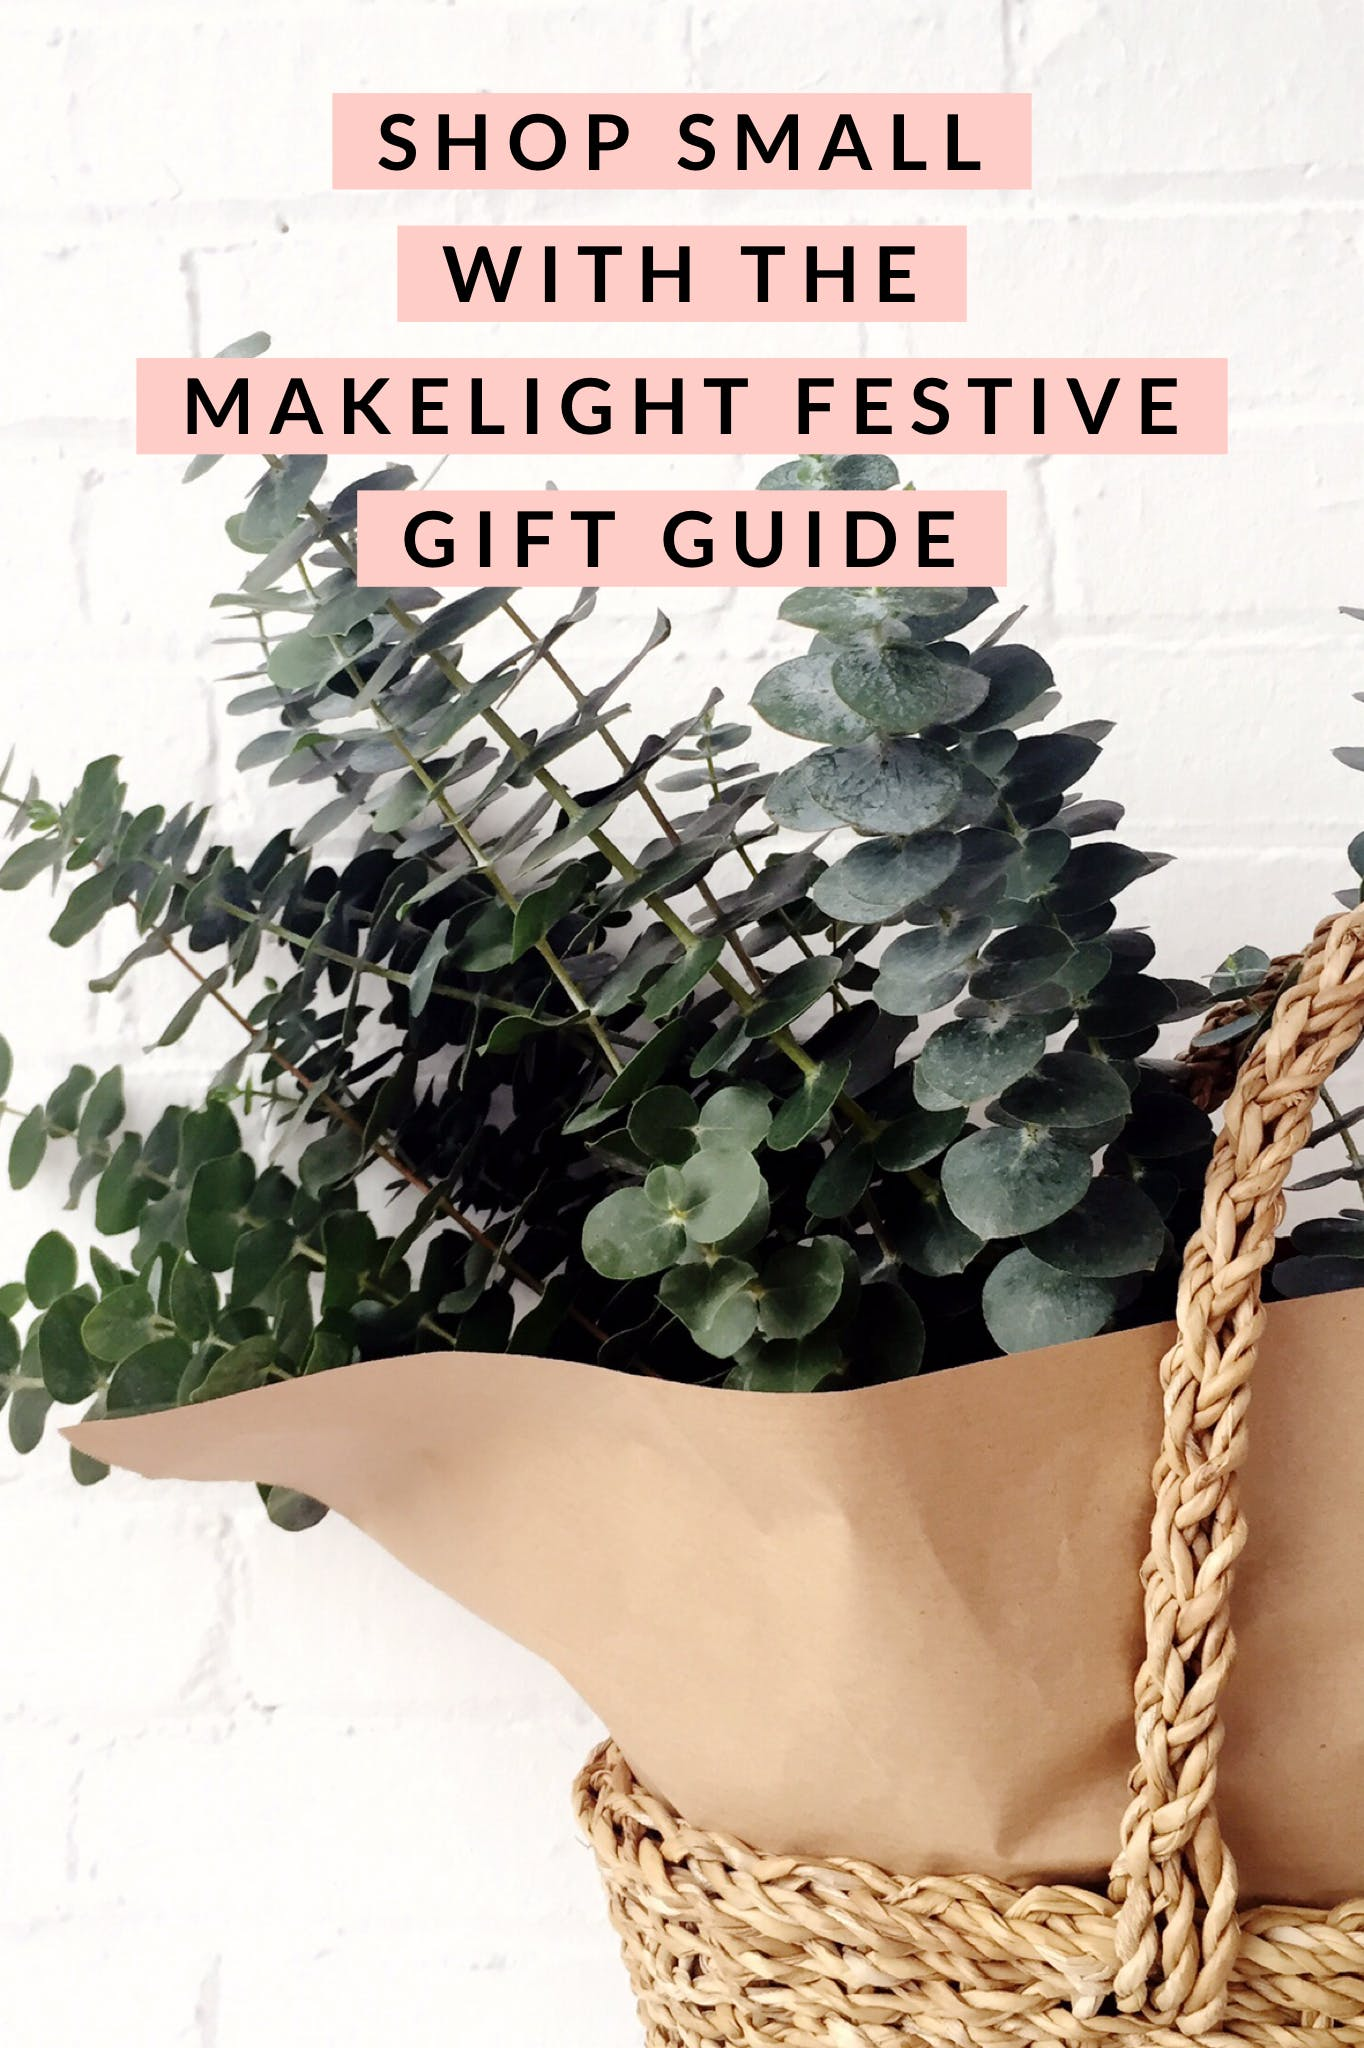 A festive gift guide from the Makelight Members